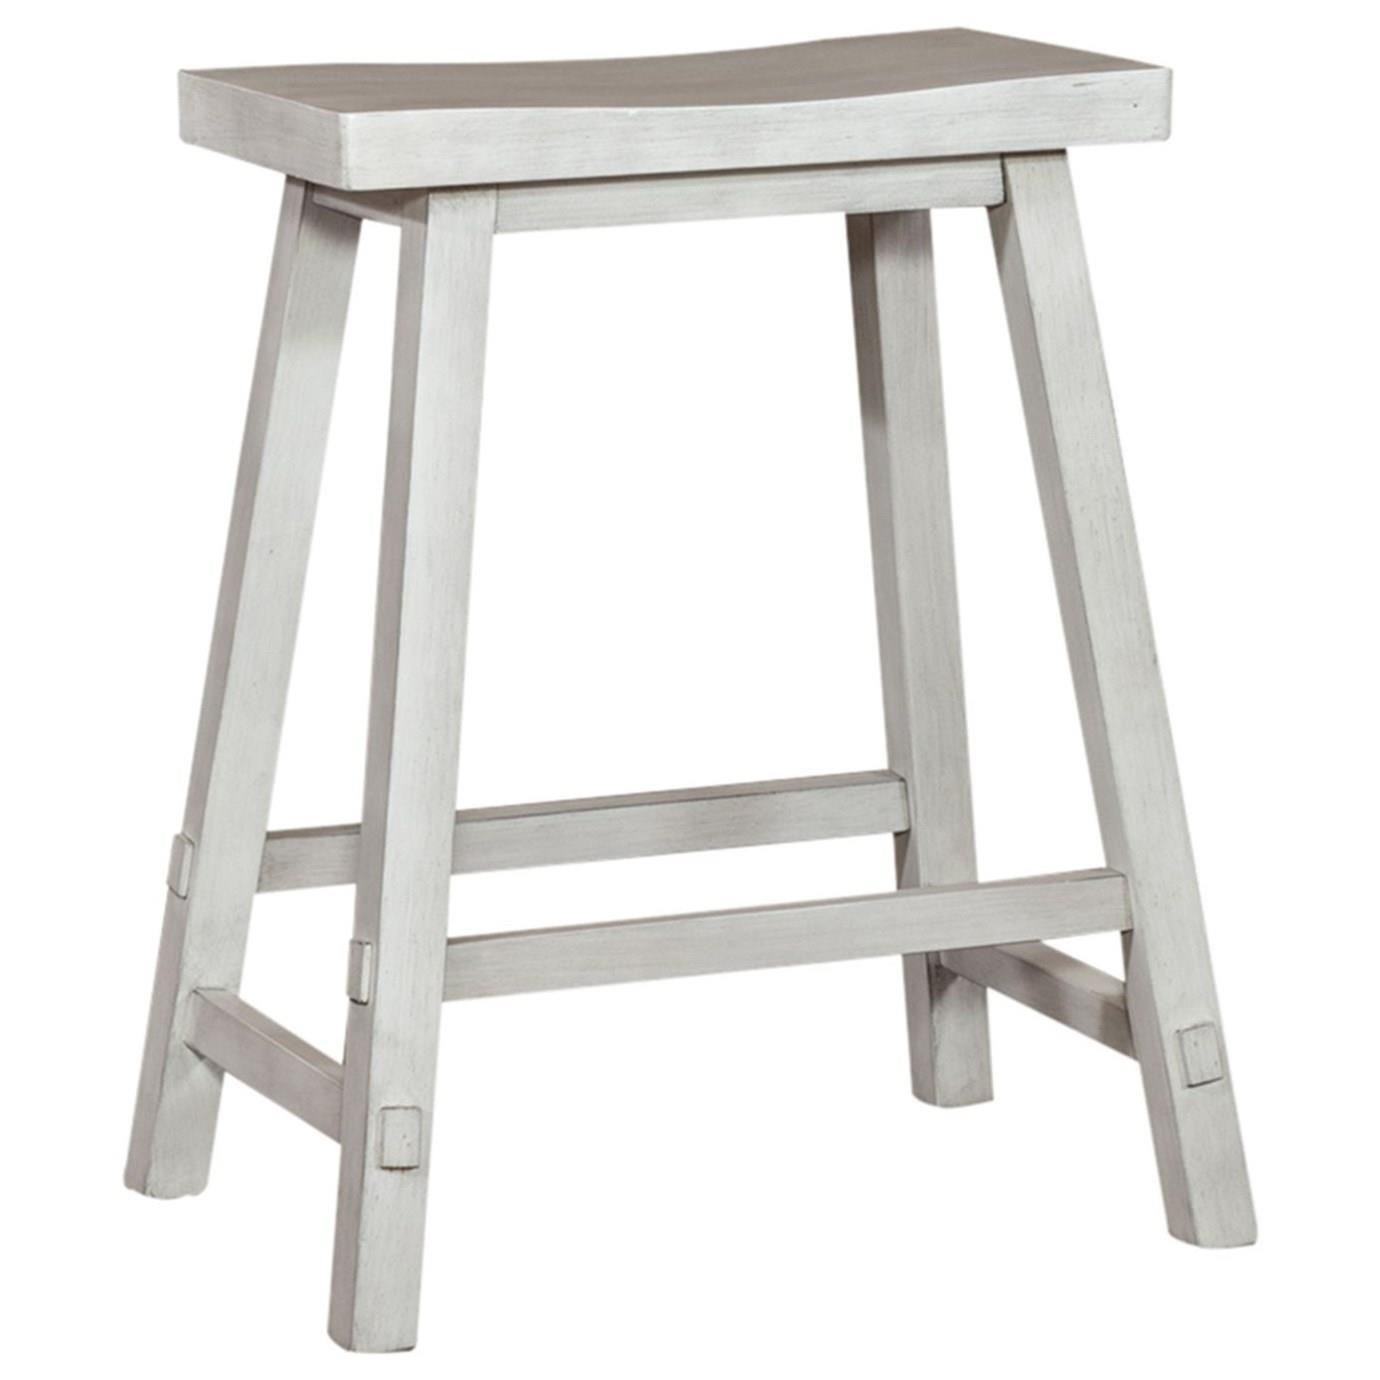 Creations II 24 Inch Sawhorse Barstool by Libby at Walker's Furniture